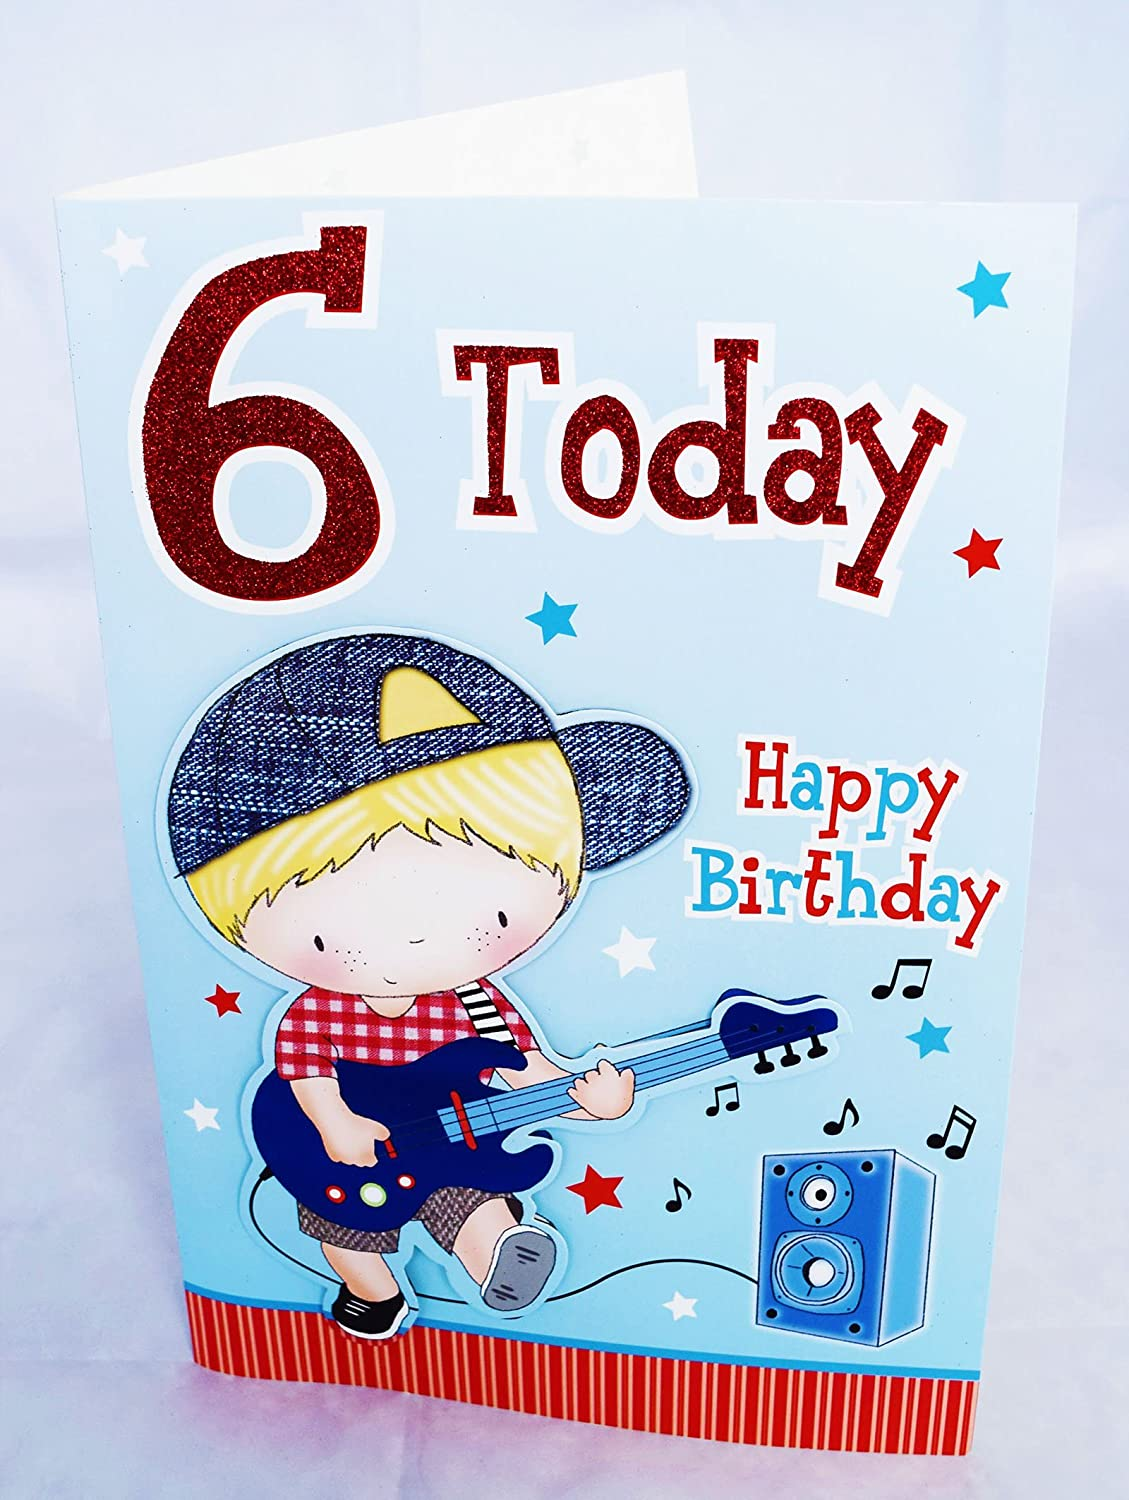 6 Today Happy Birthday Card For Boy Age 6th Kids Cute Large Poem Verse Him Amazoncouk Office Products